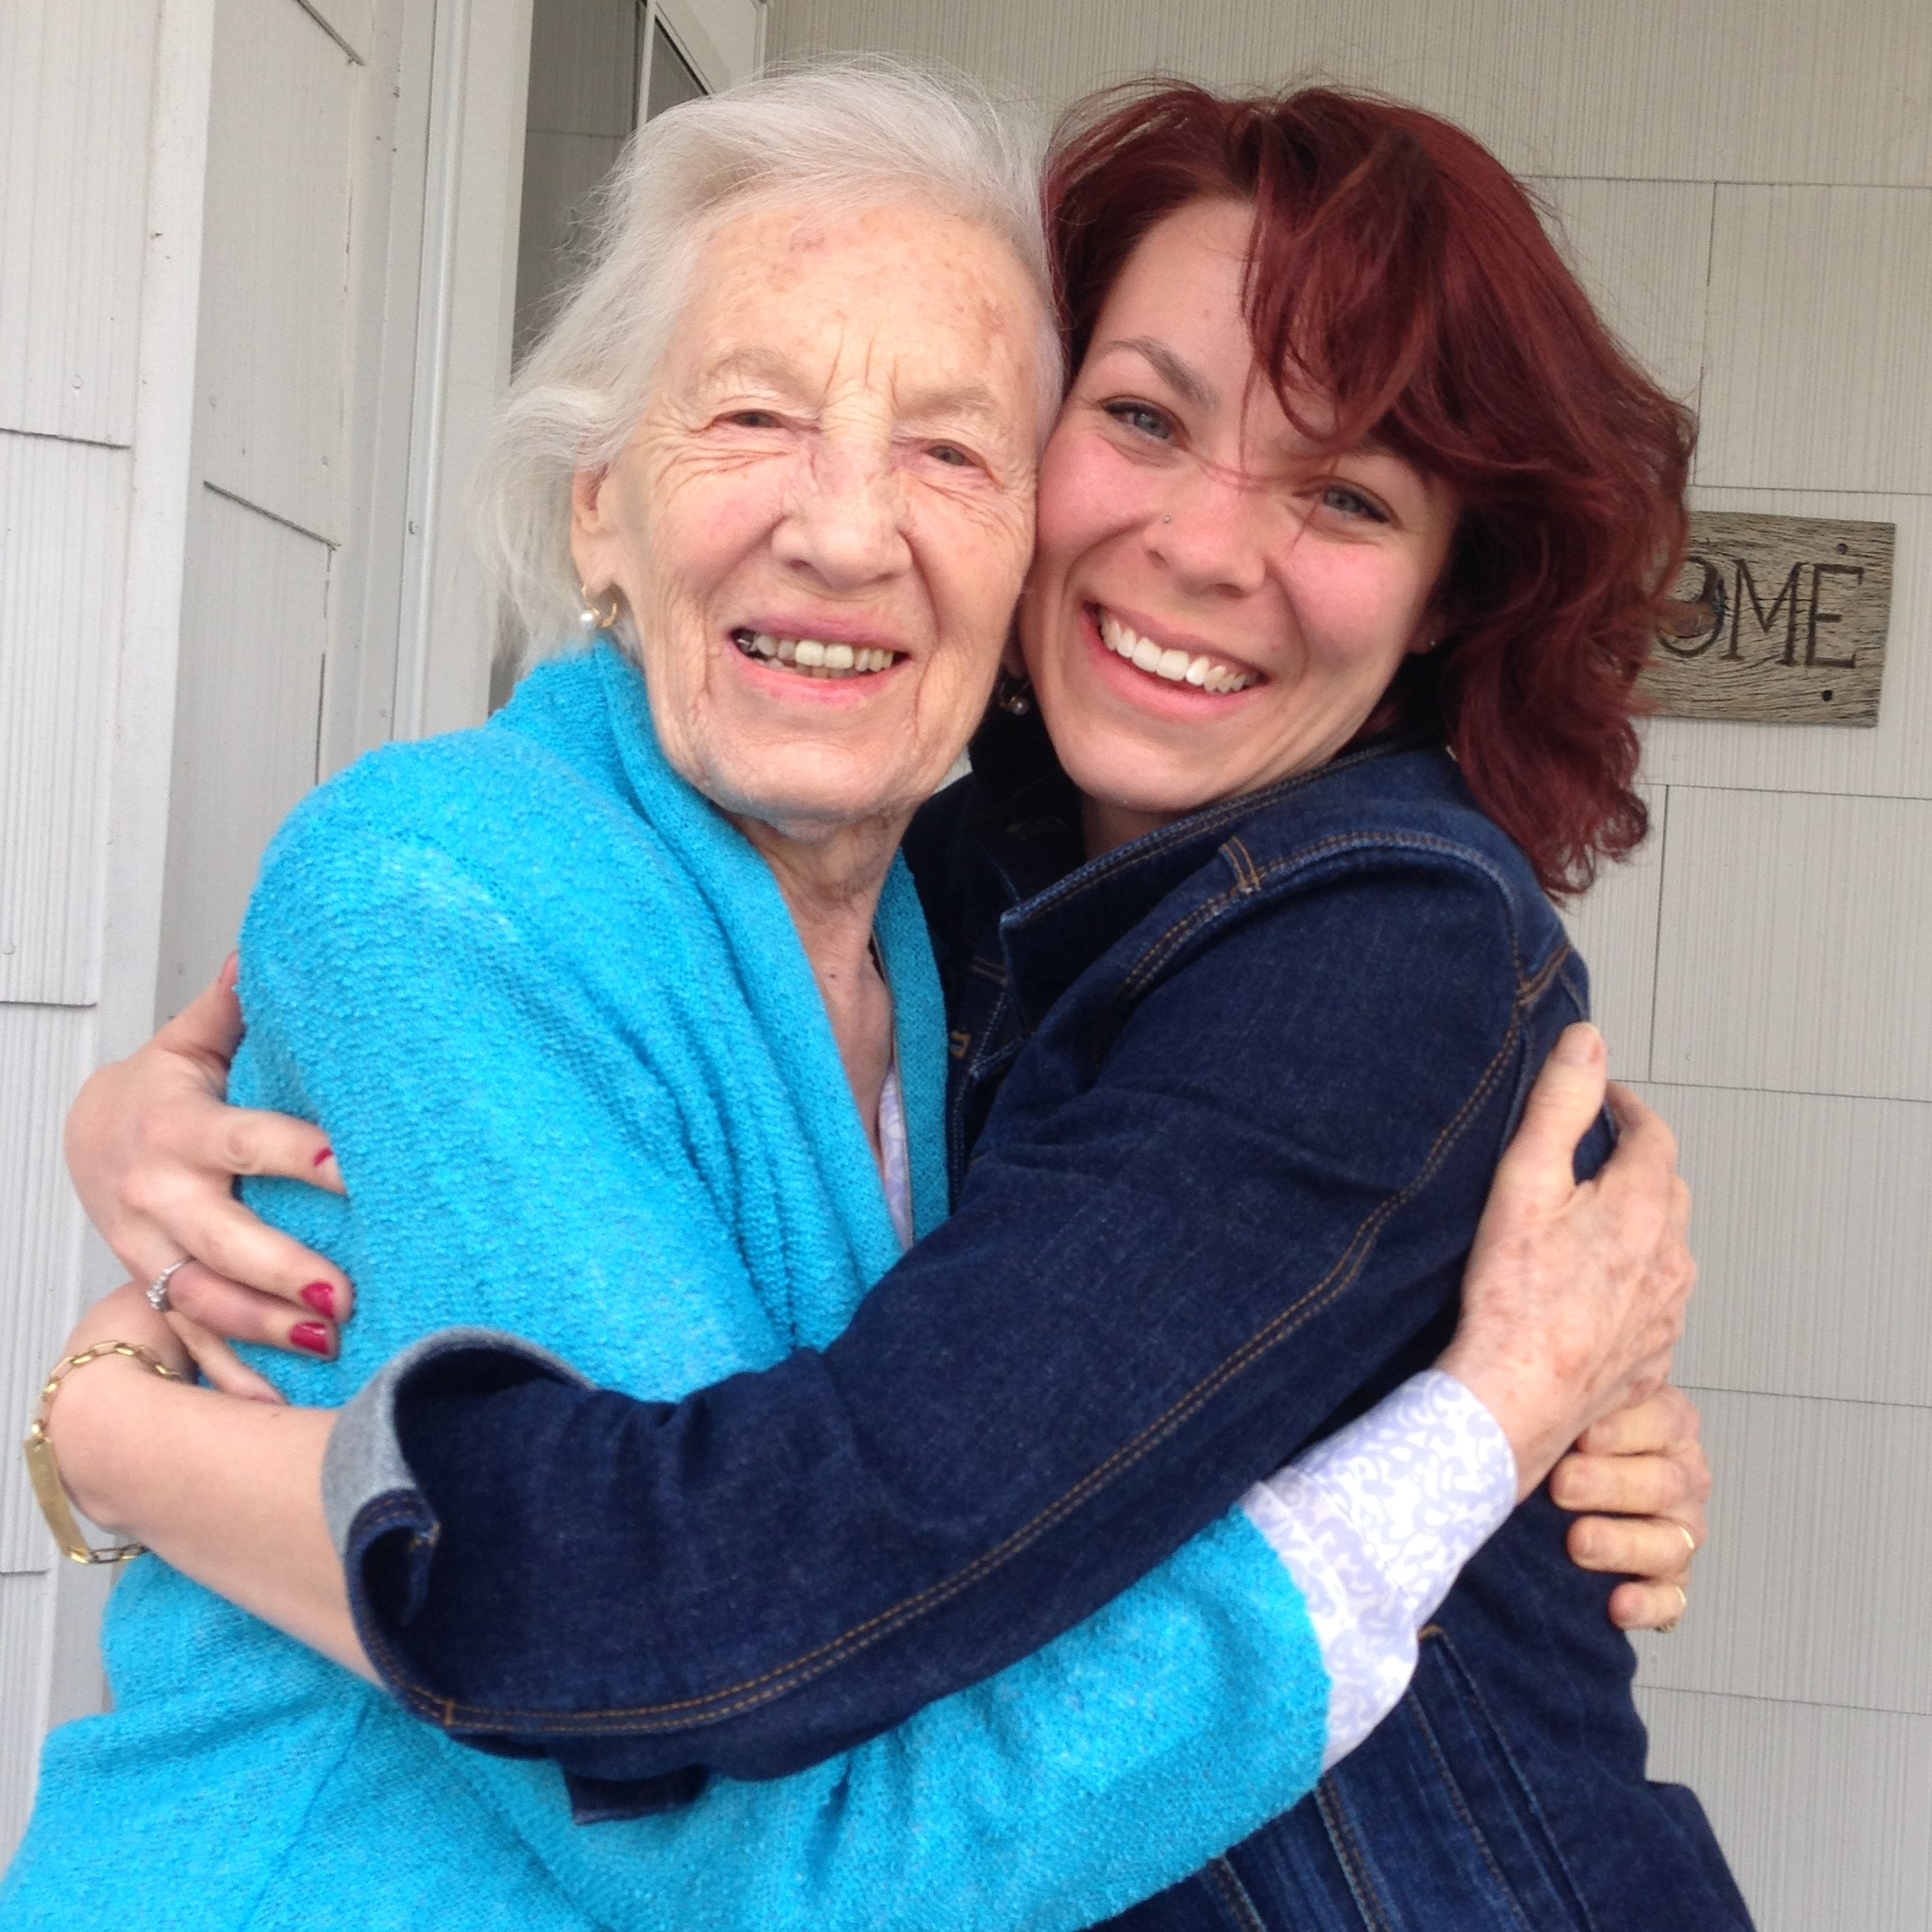 Here I am with my grandmother, whose handwriting is the font for the logo itself.